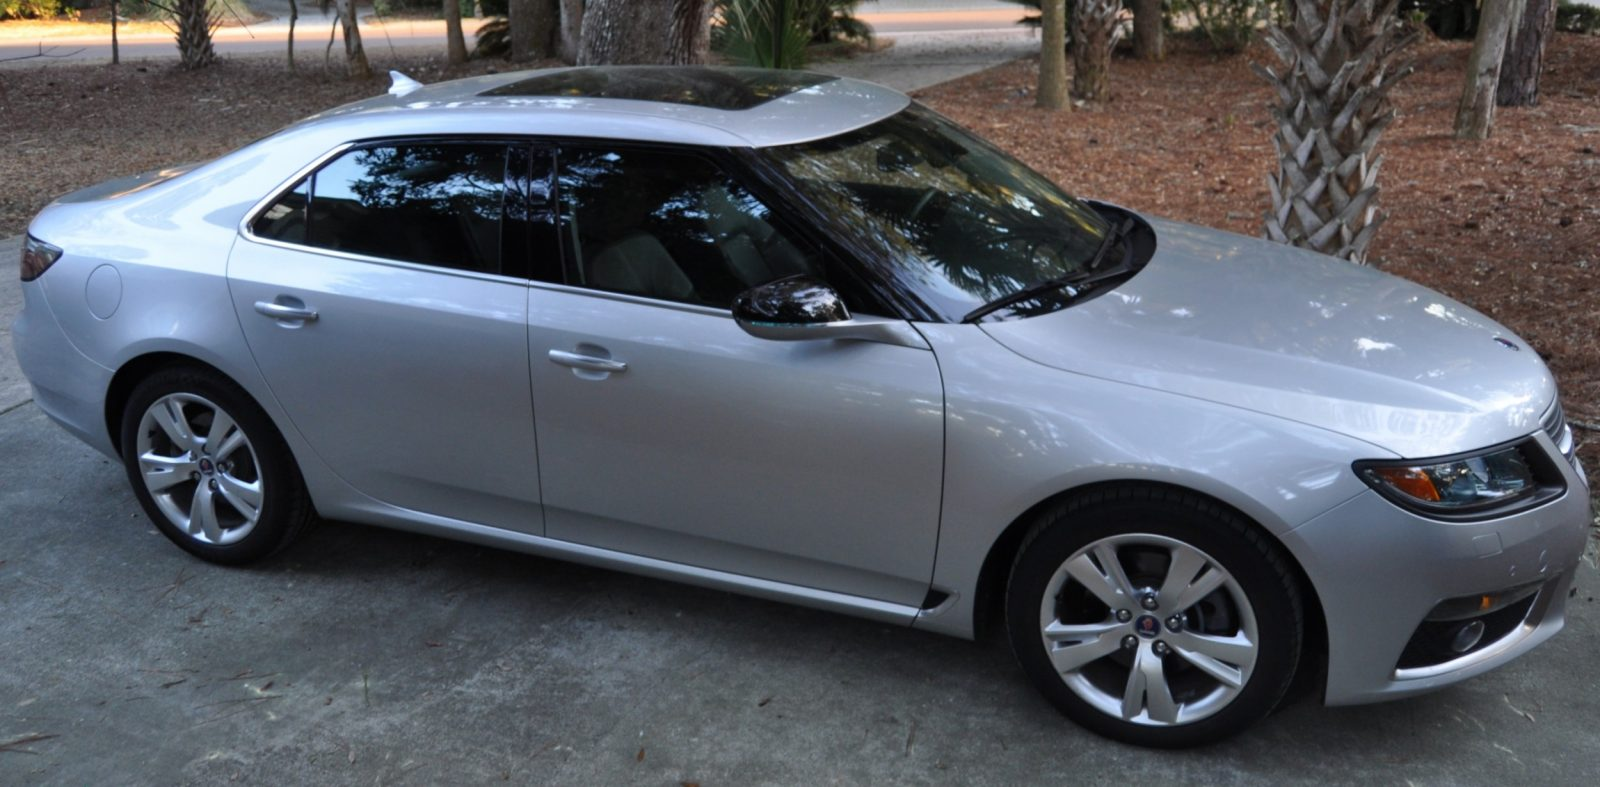 2013 SAAB 9-5 Turbo6 XWD Aero -- 48 HQ Photos -- The Coolest AWD, Turbo V6 Limo You Cannot Buy 45